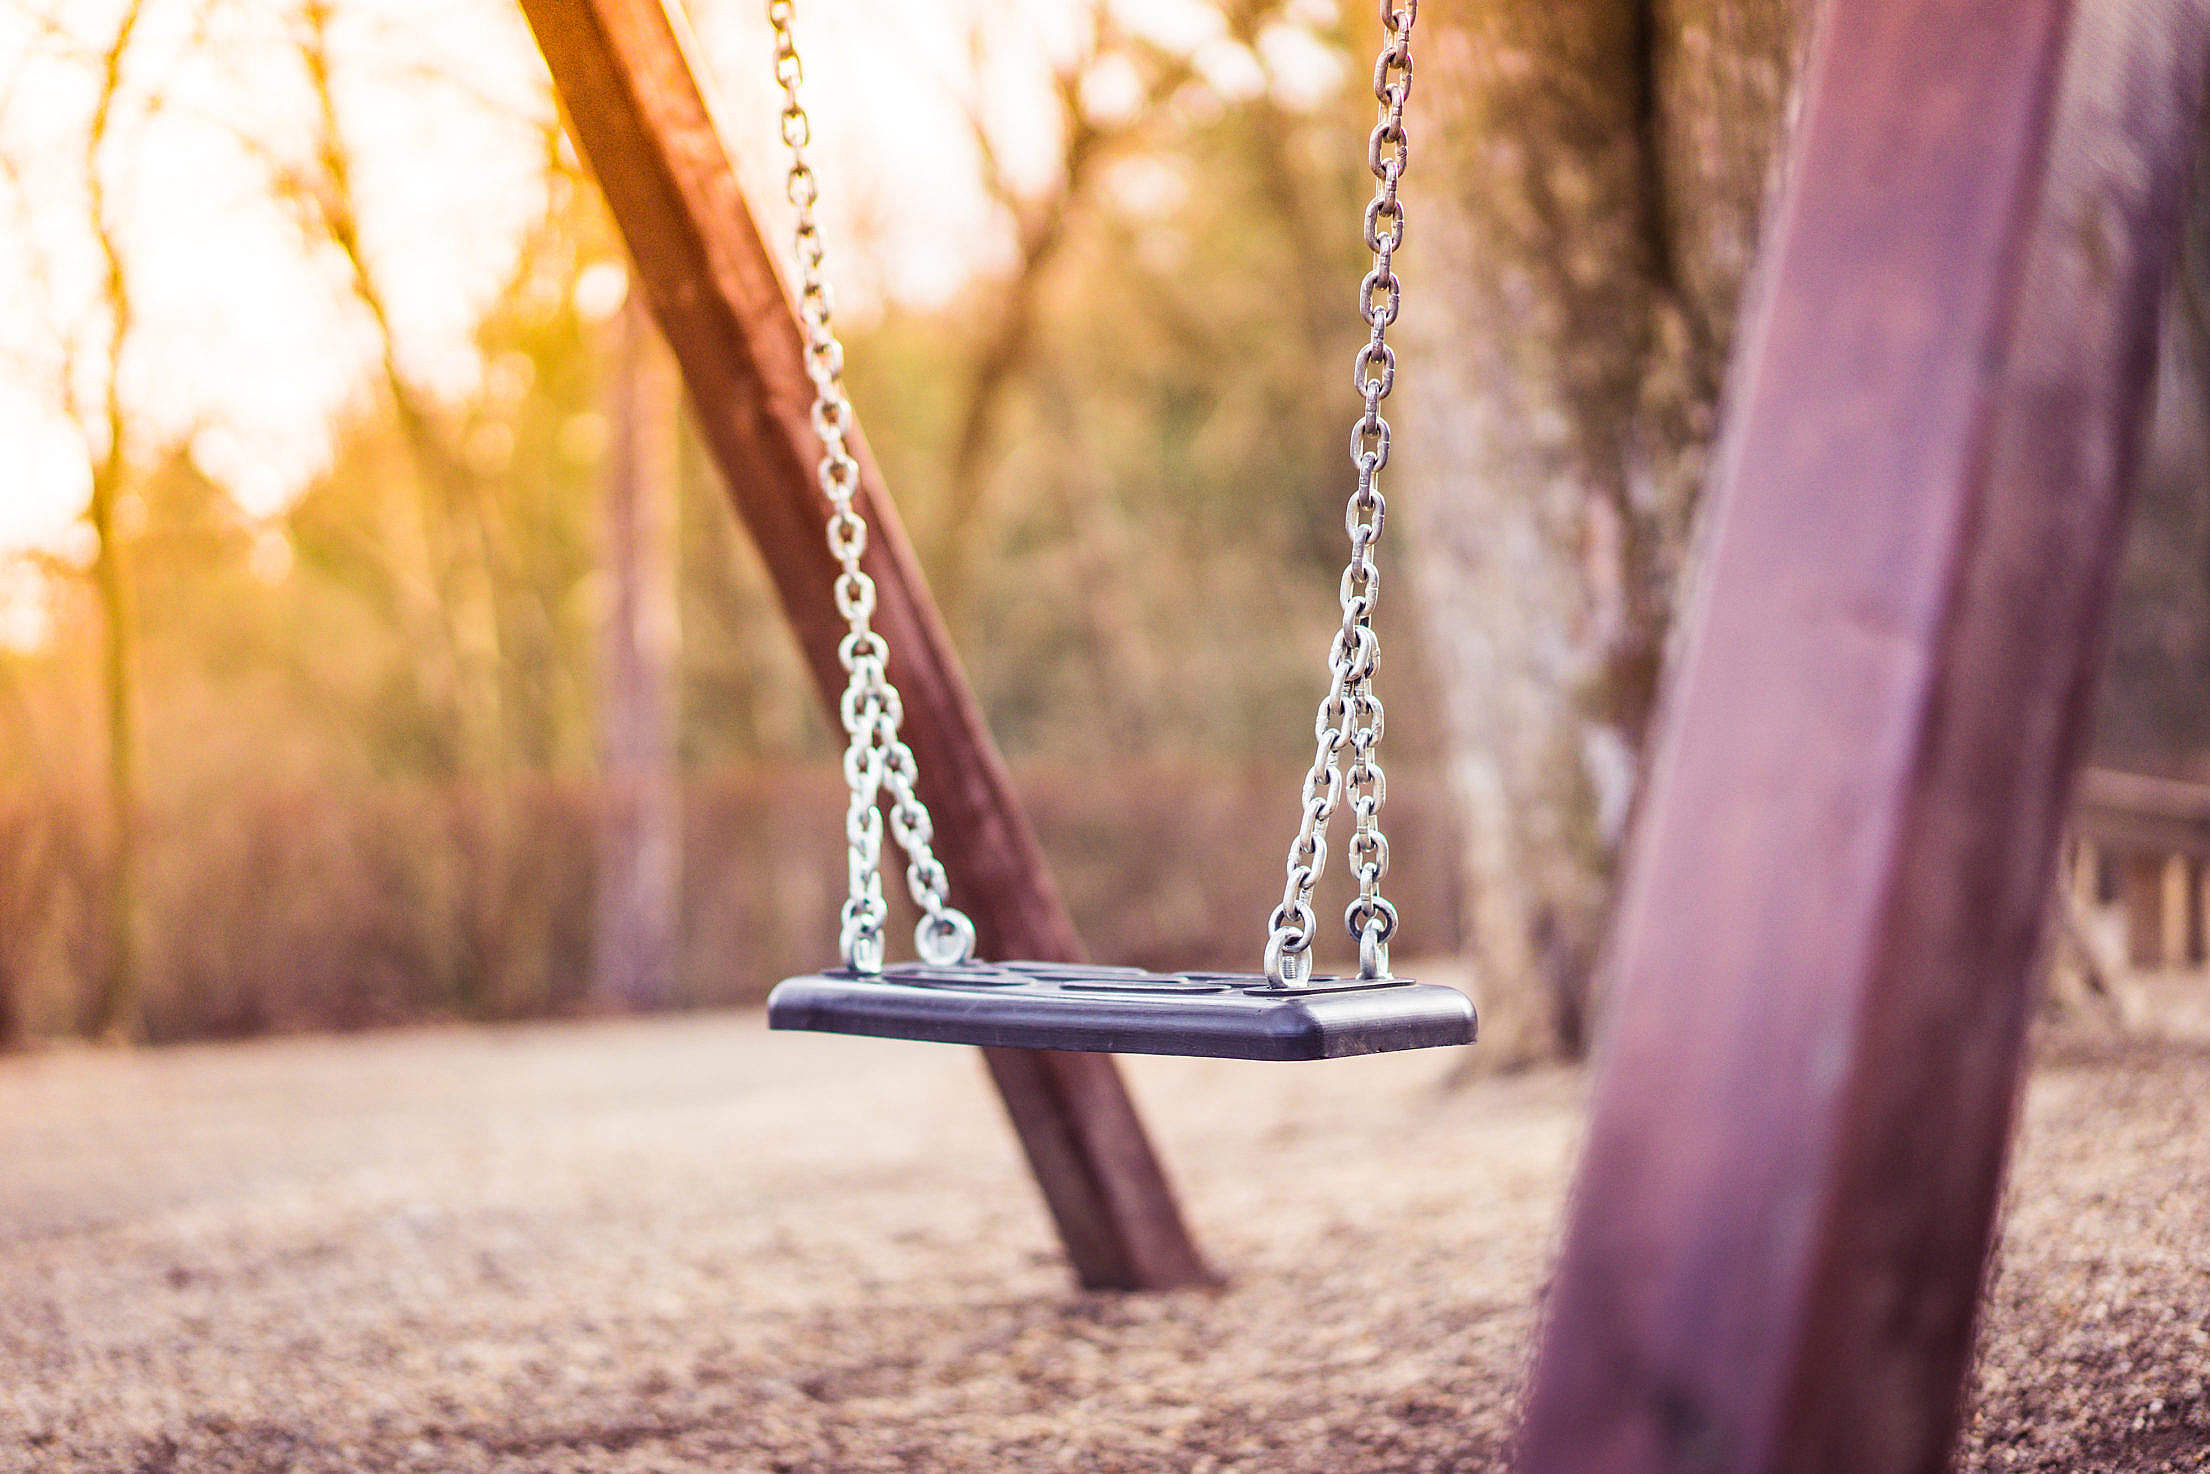 swing-for-kids-in-city-park-playground-2_free_stock_photos_picjumbo_DSC03309-2210x1474